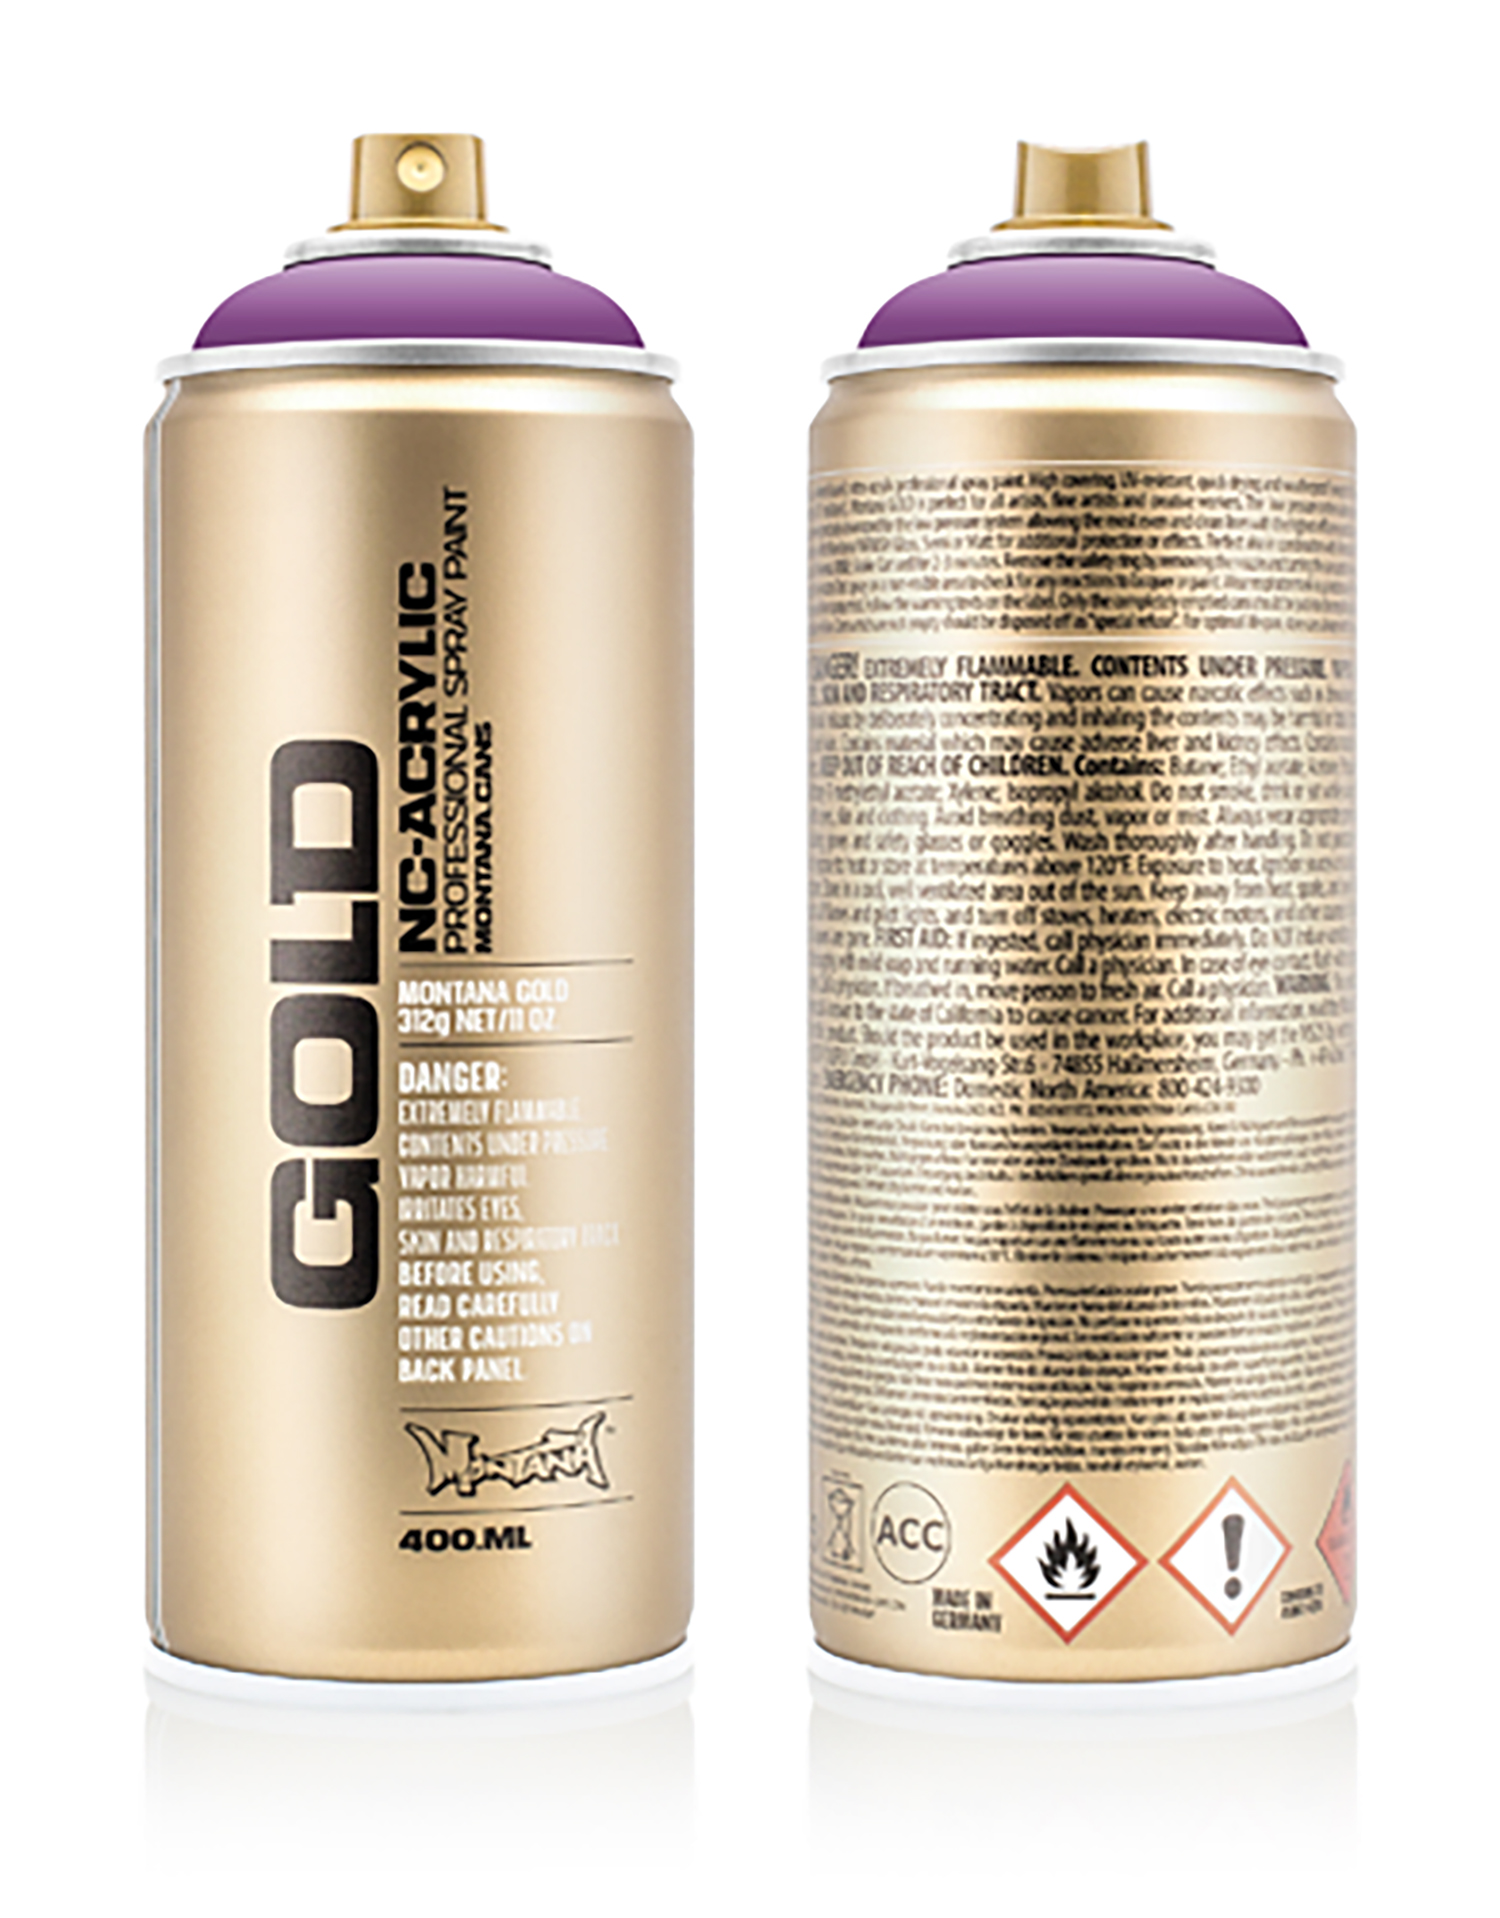 MONTANA-GOLD-SPRAY-400ML-G-4220